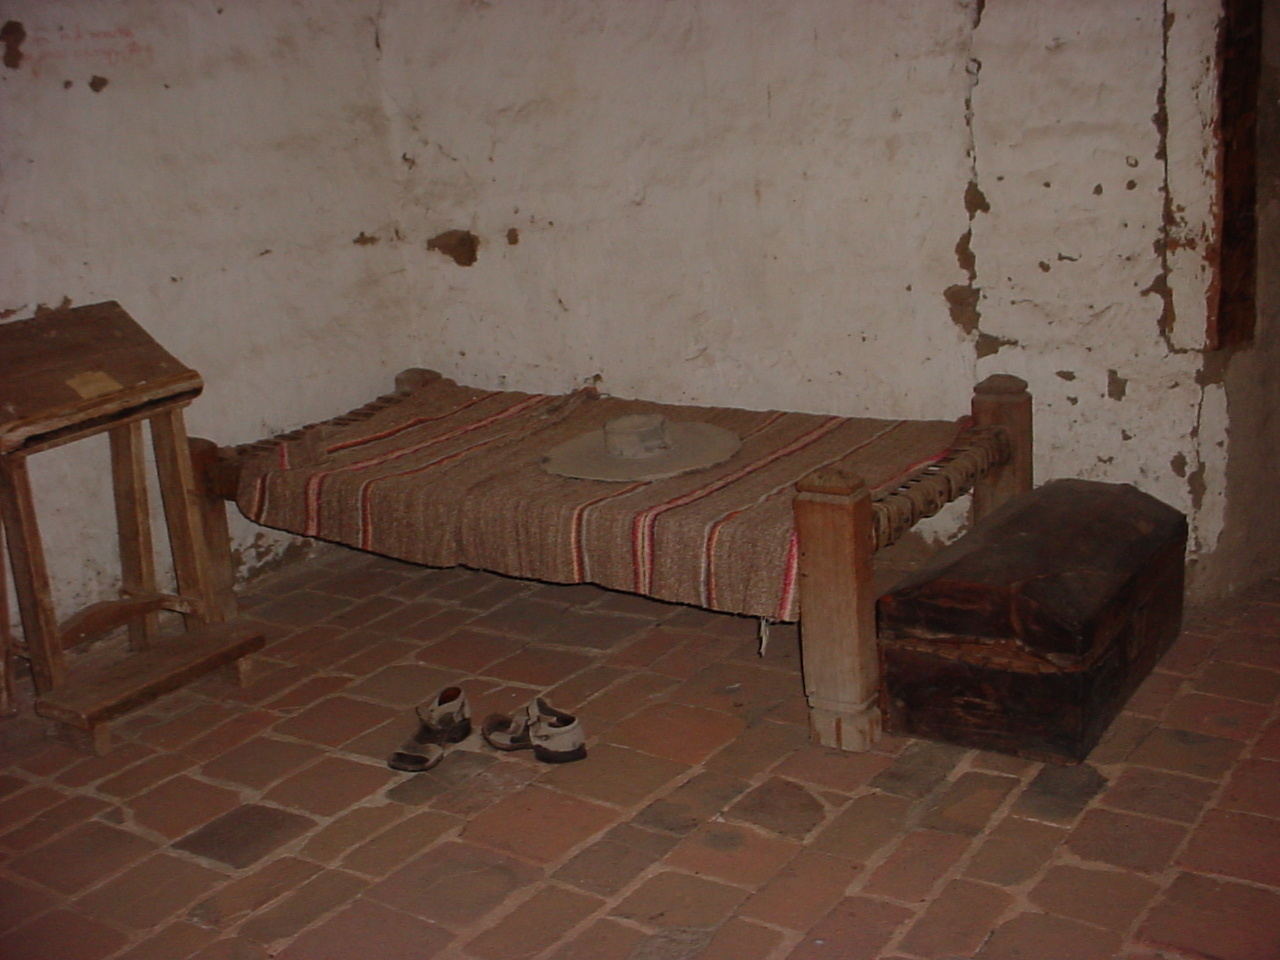 Padres Bed at Mission San Miguel Arcangel